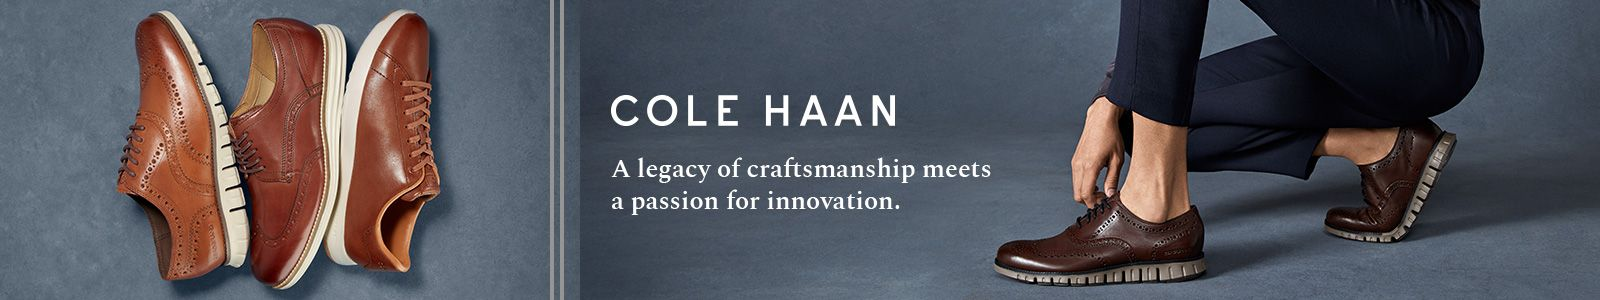 Cole Haan, A legacy of craftsmanship meets a passsion for innovation